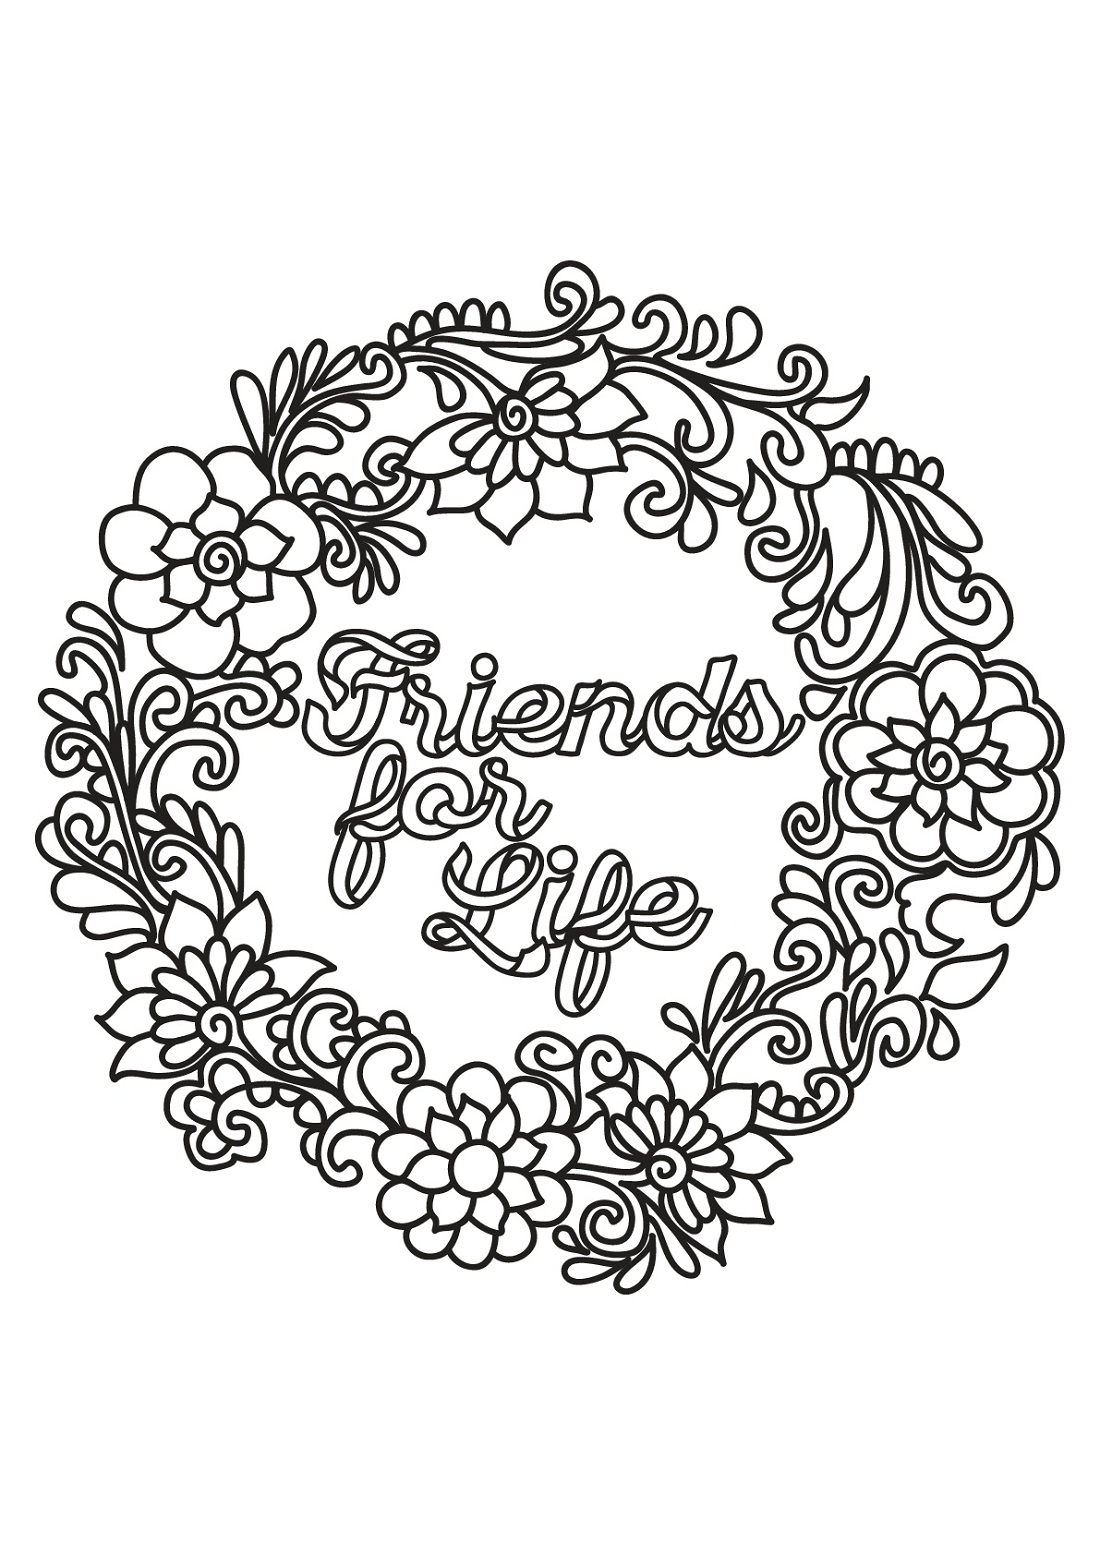 Quote and Sayings Coloring Pages   Activity Shelter   free printable colouring pages quotes